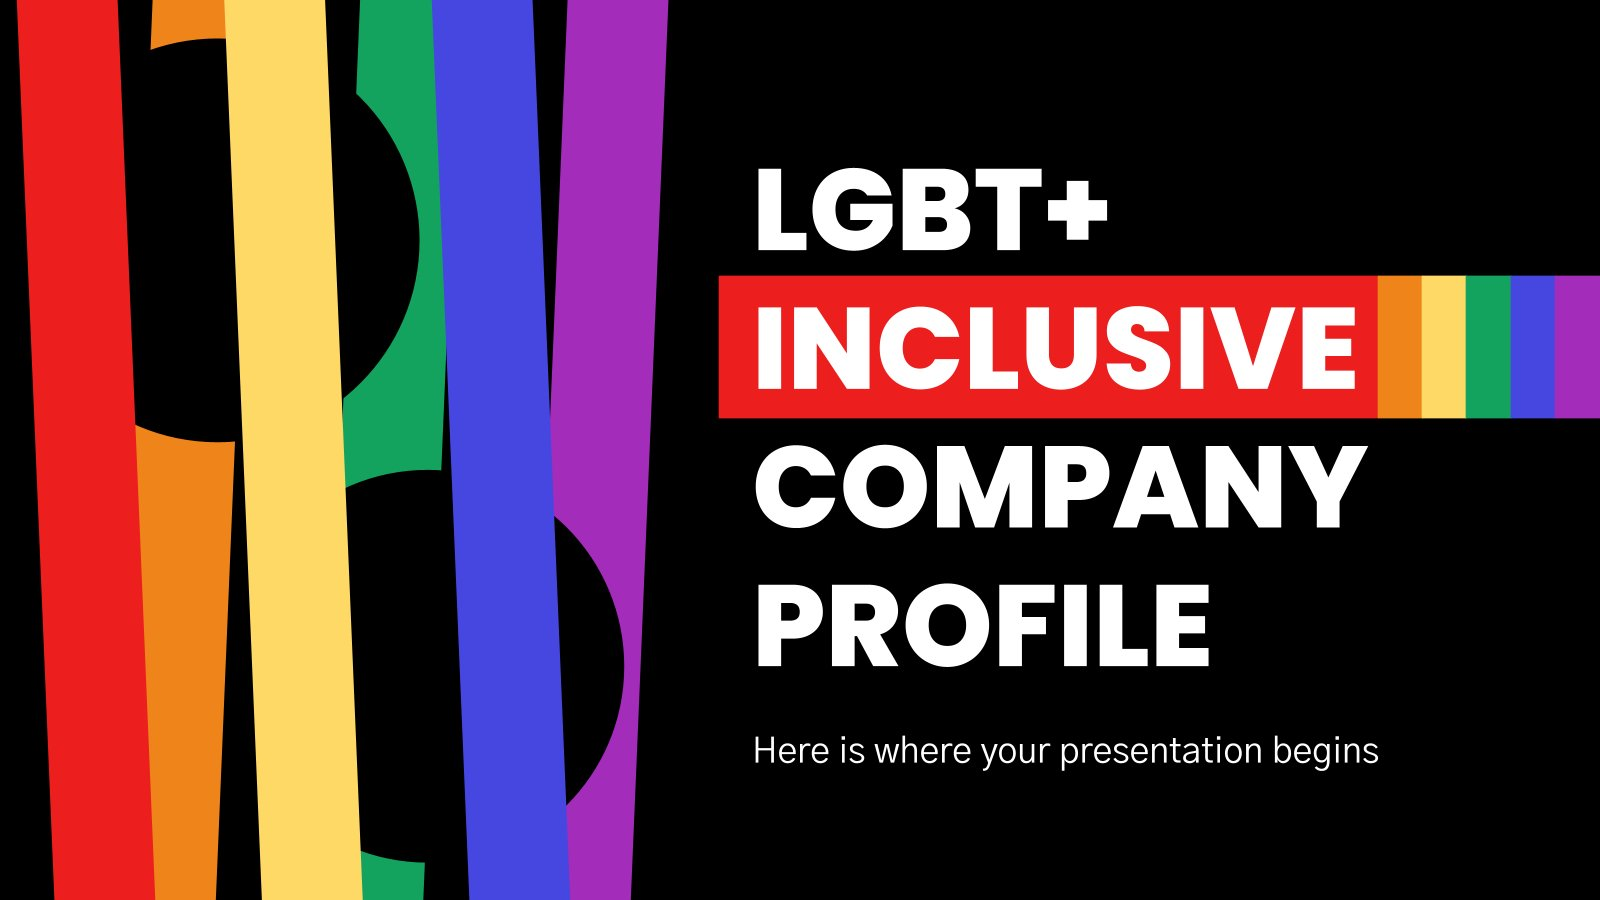 LGBT+ Inclusive Company Profile presentation template